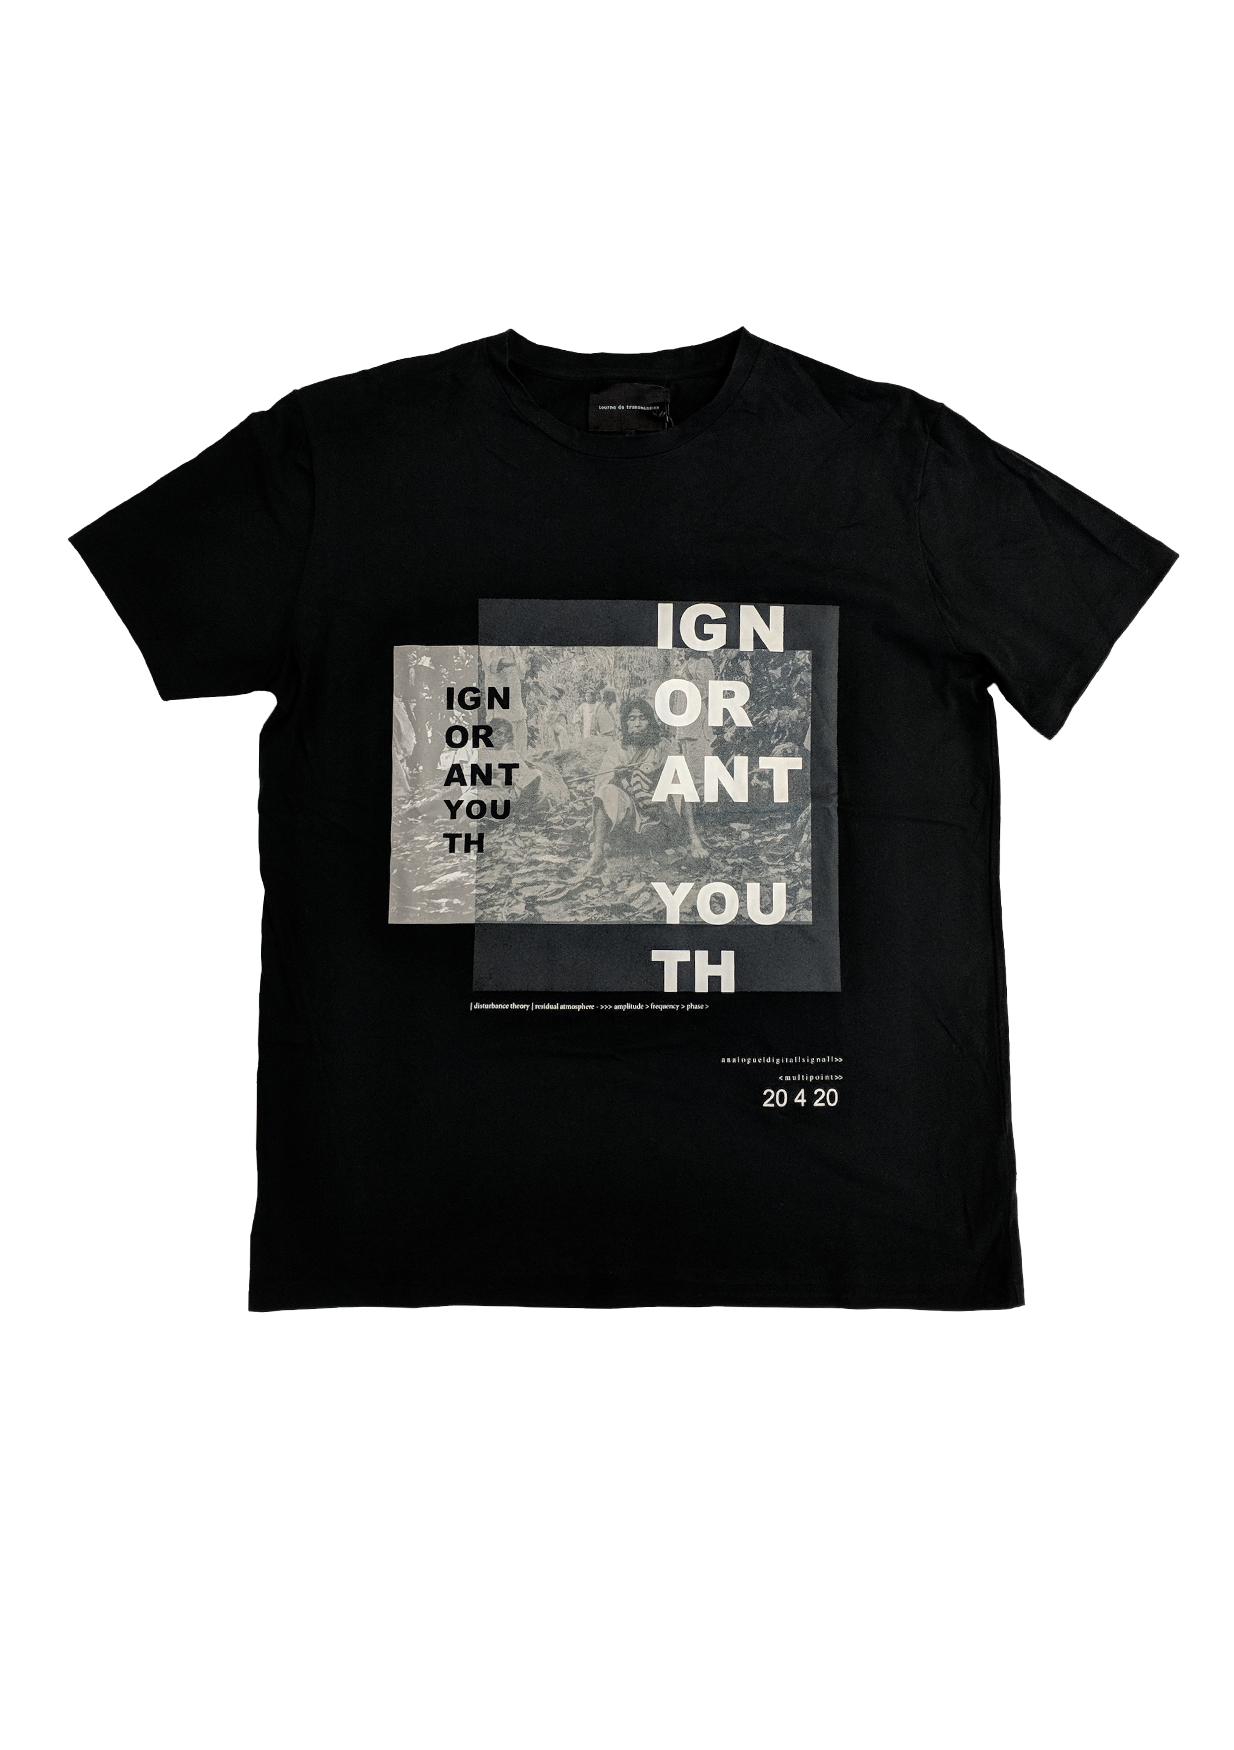 SS16 'We the Ignorant youth' tee - black